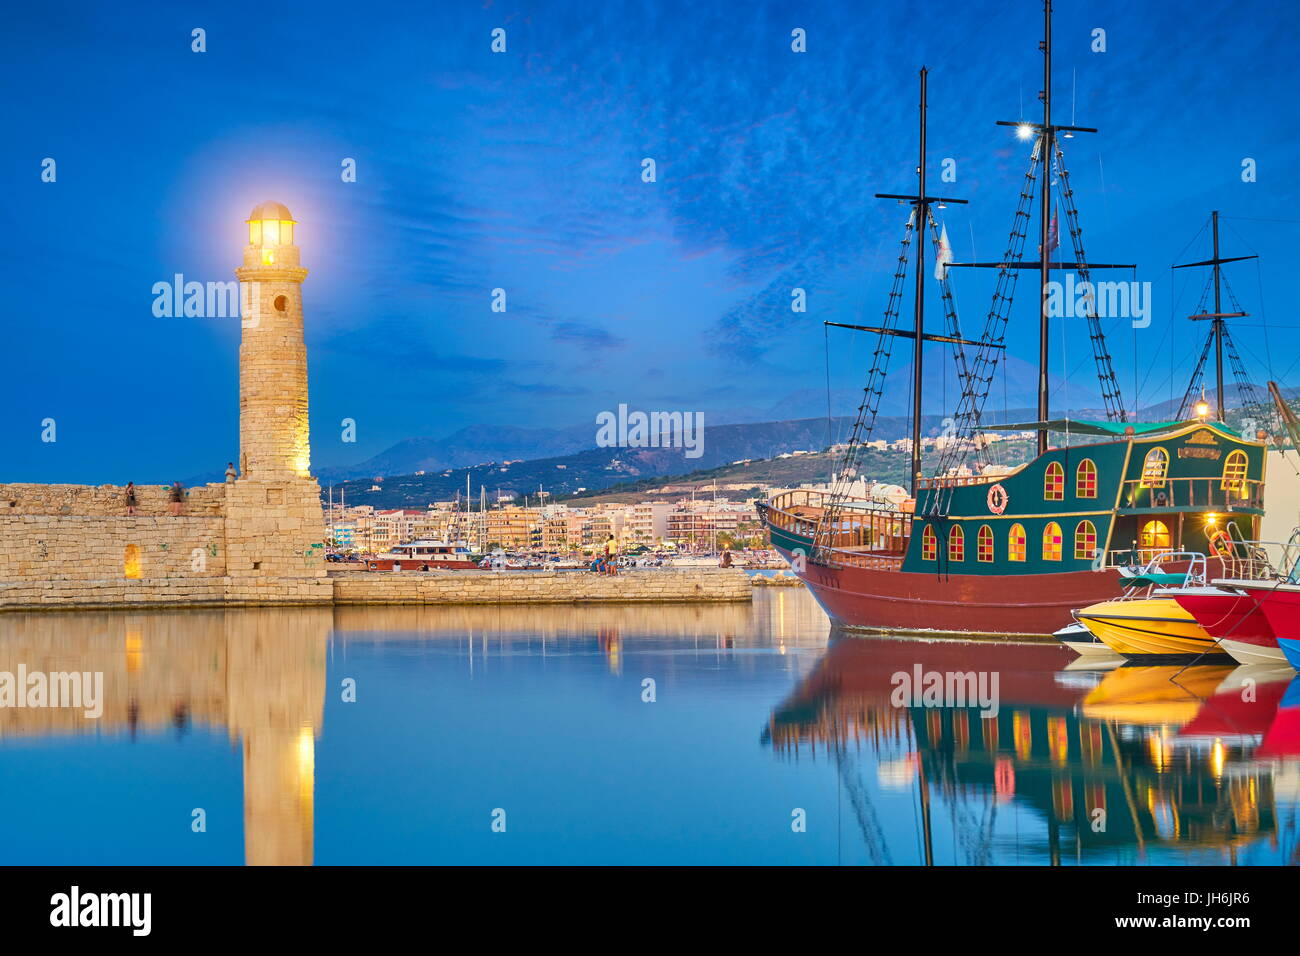 Lighthouse at Old Venetian Port, Rethymno, Crete, Greece - Stock Image